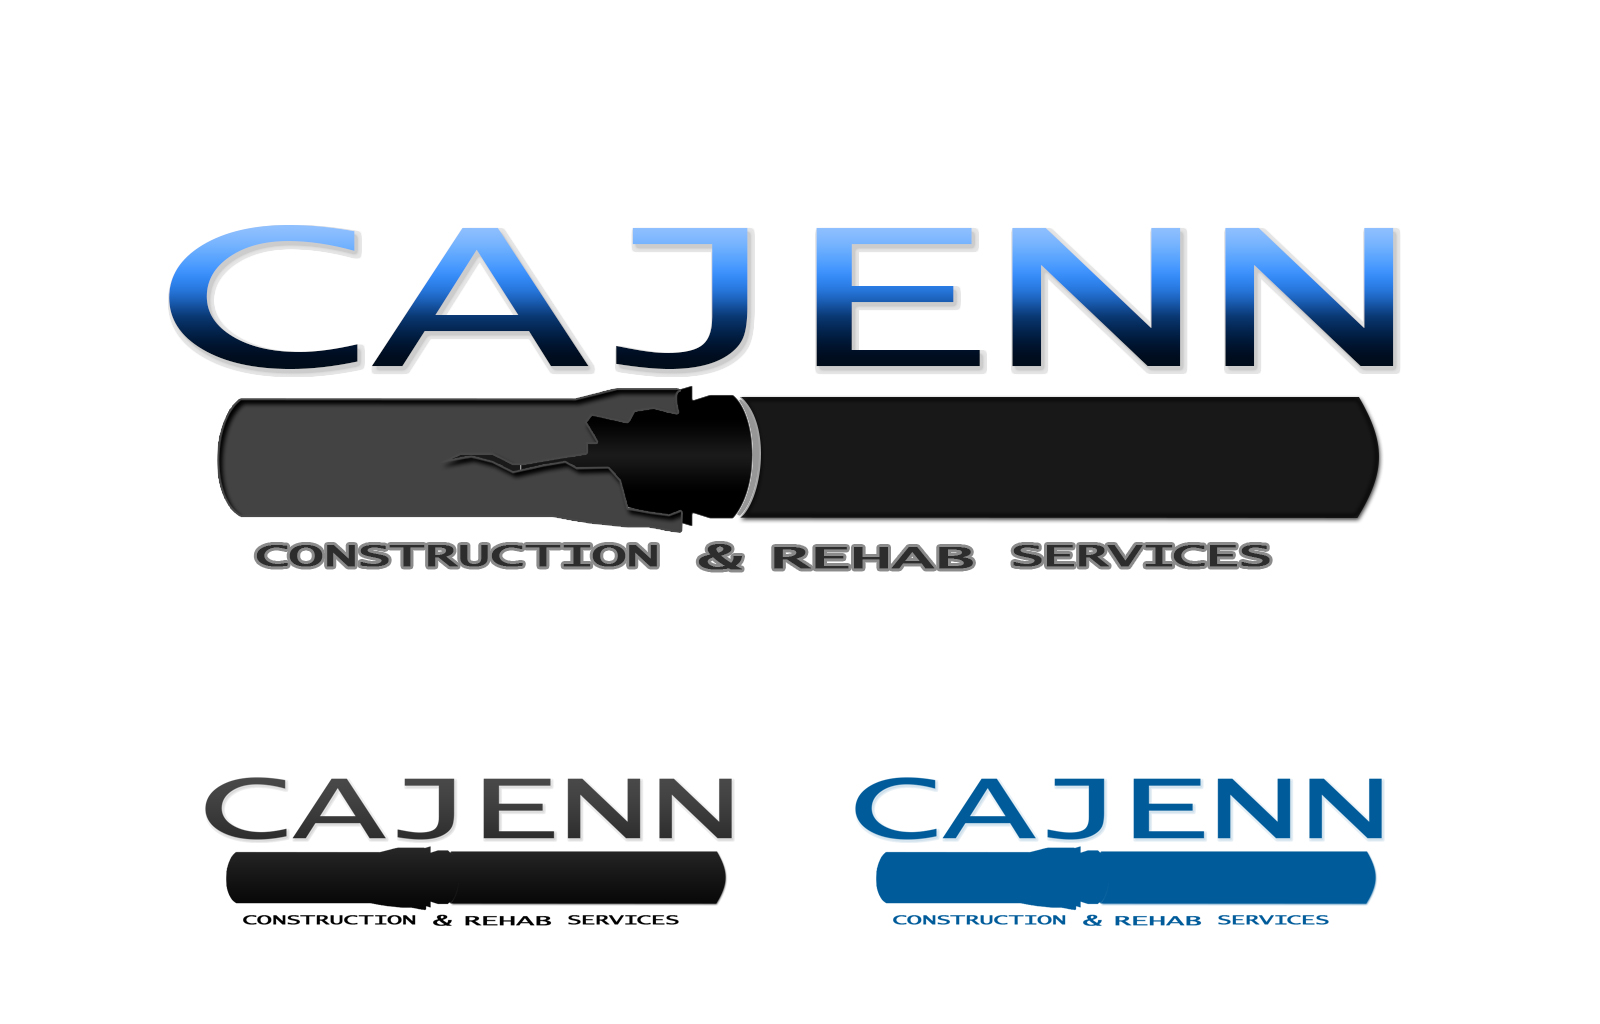 Logo Design by drunkman - Entry No. 172 in the Logo Design Contest New Logo Design for CaJenn Construction & Rehab Services.